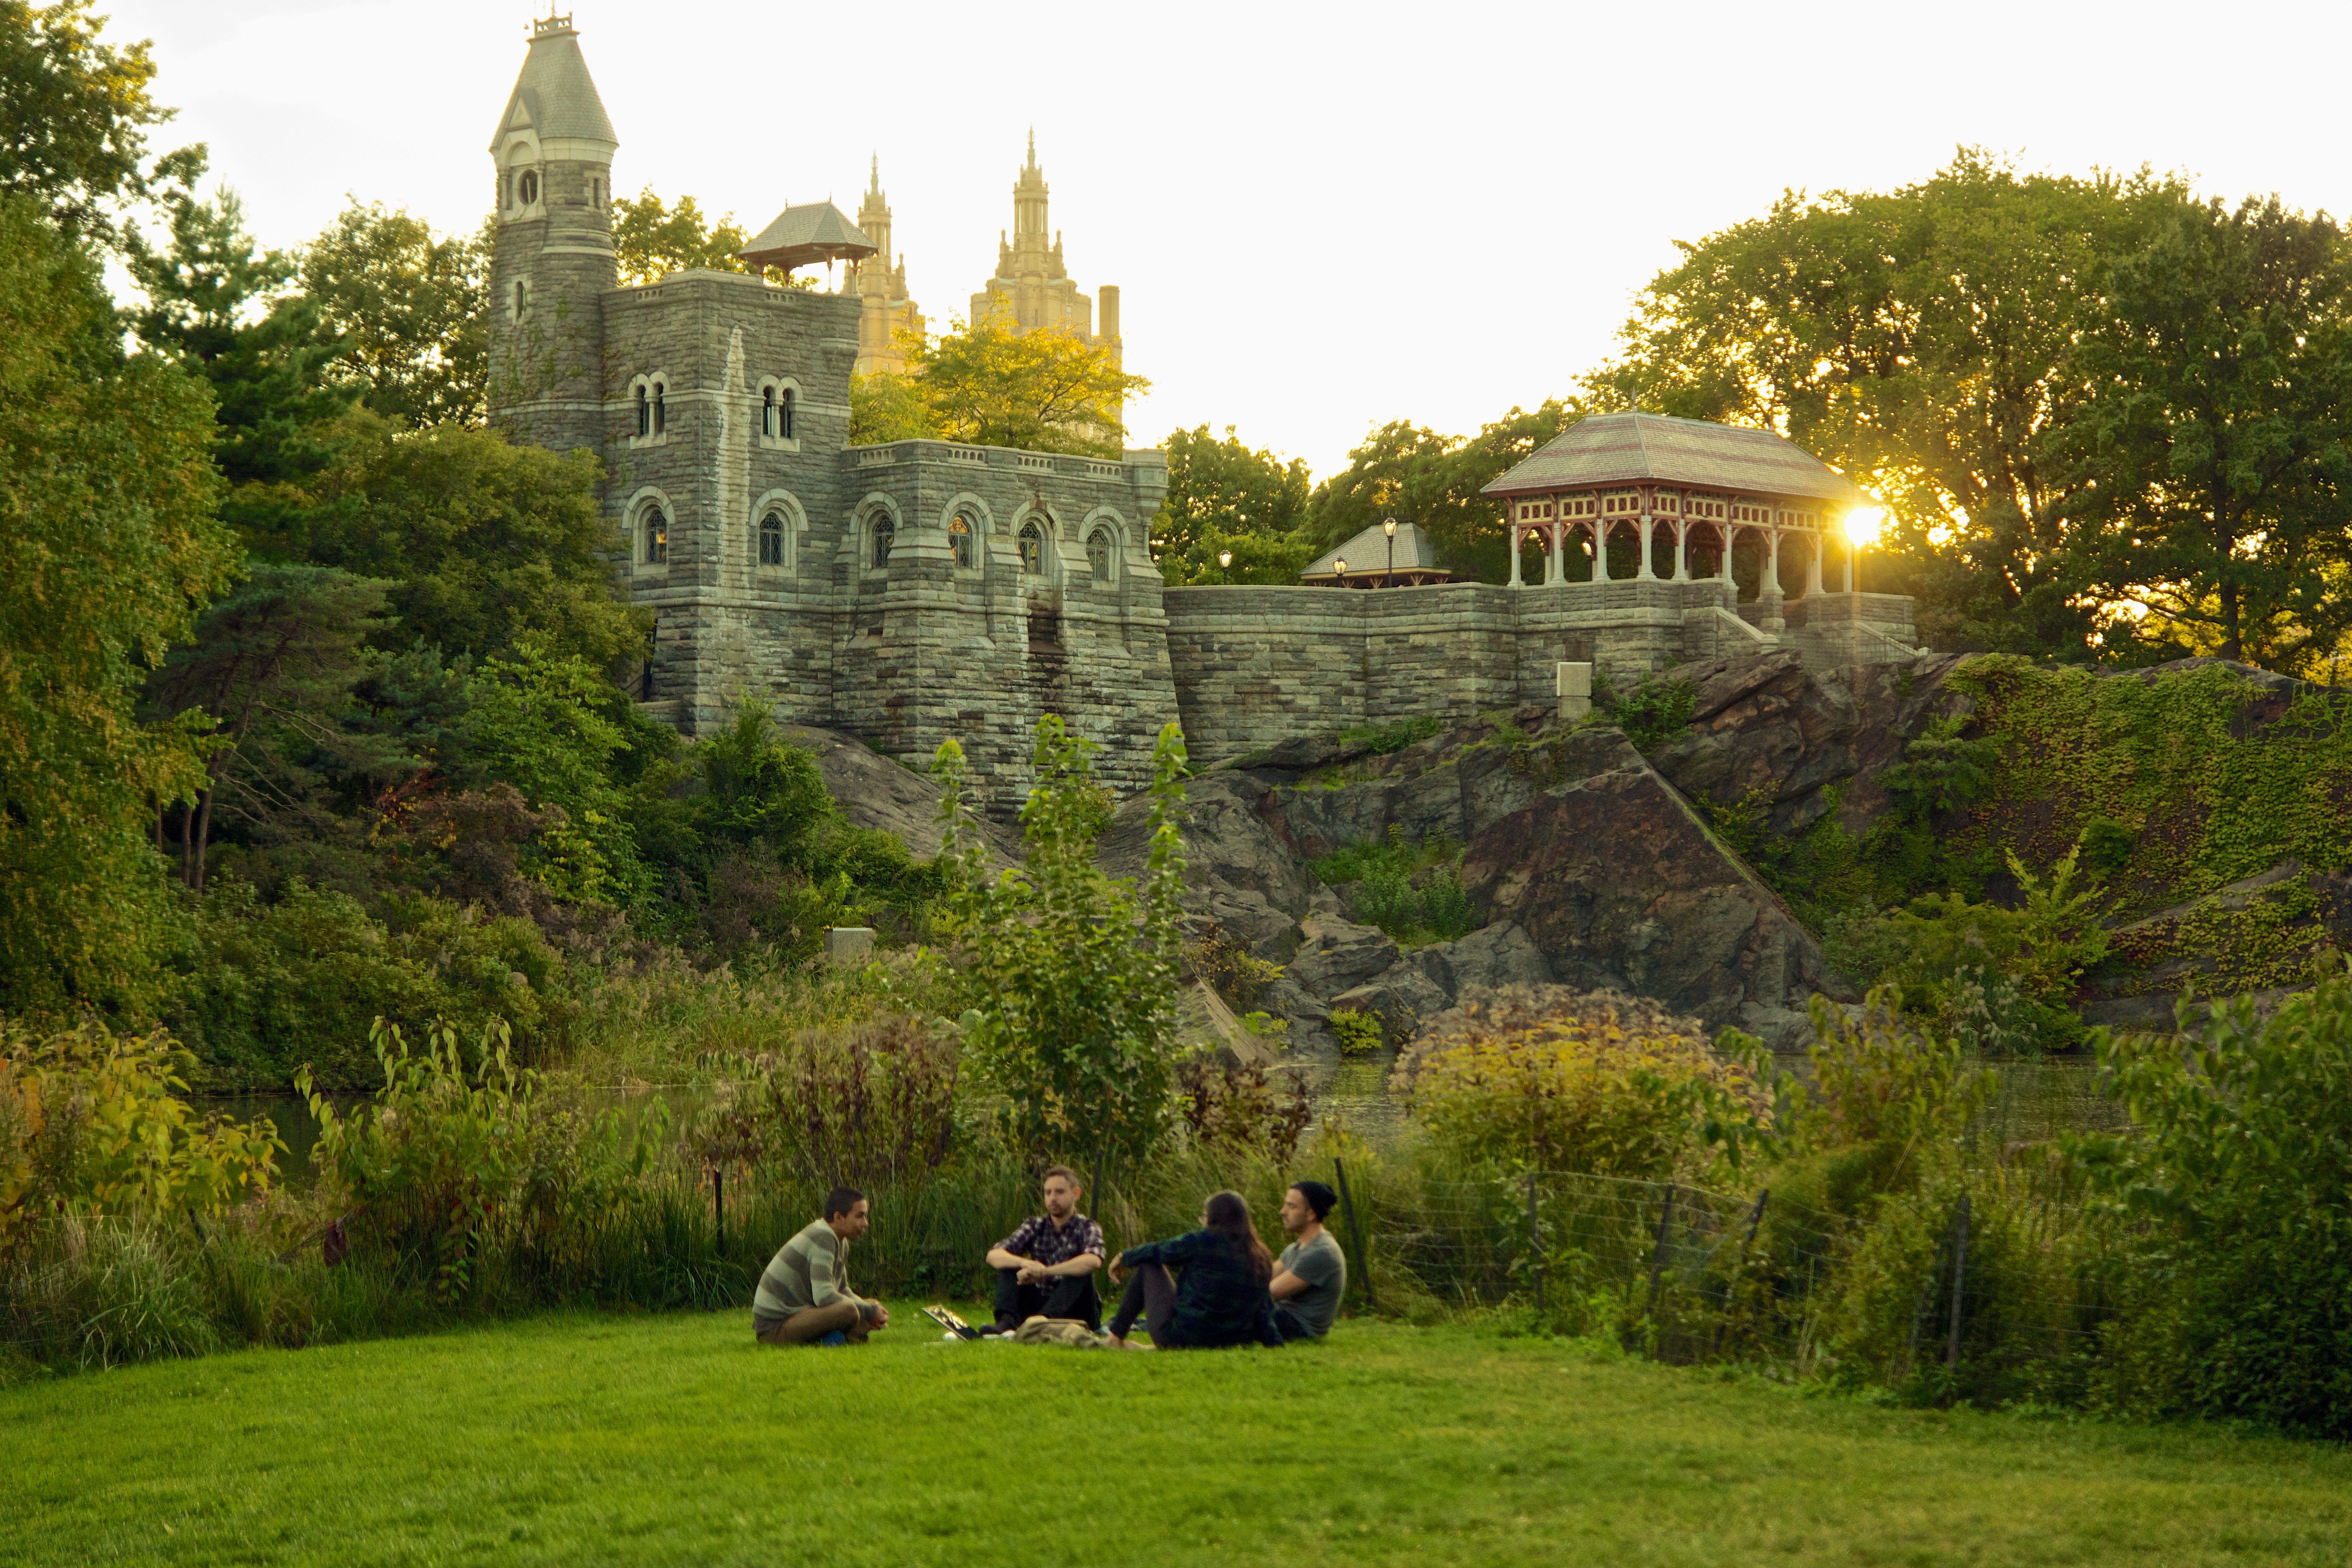 Central Park/Great Lawn, Sep 2013 - 03